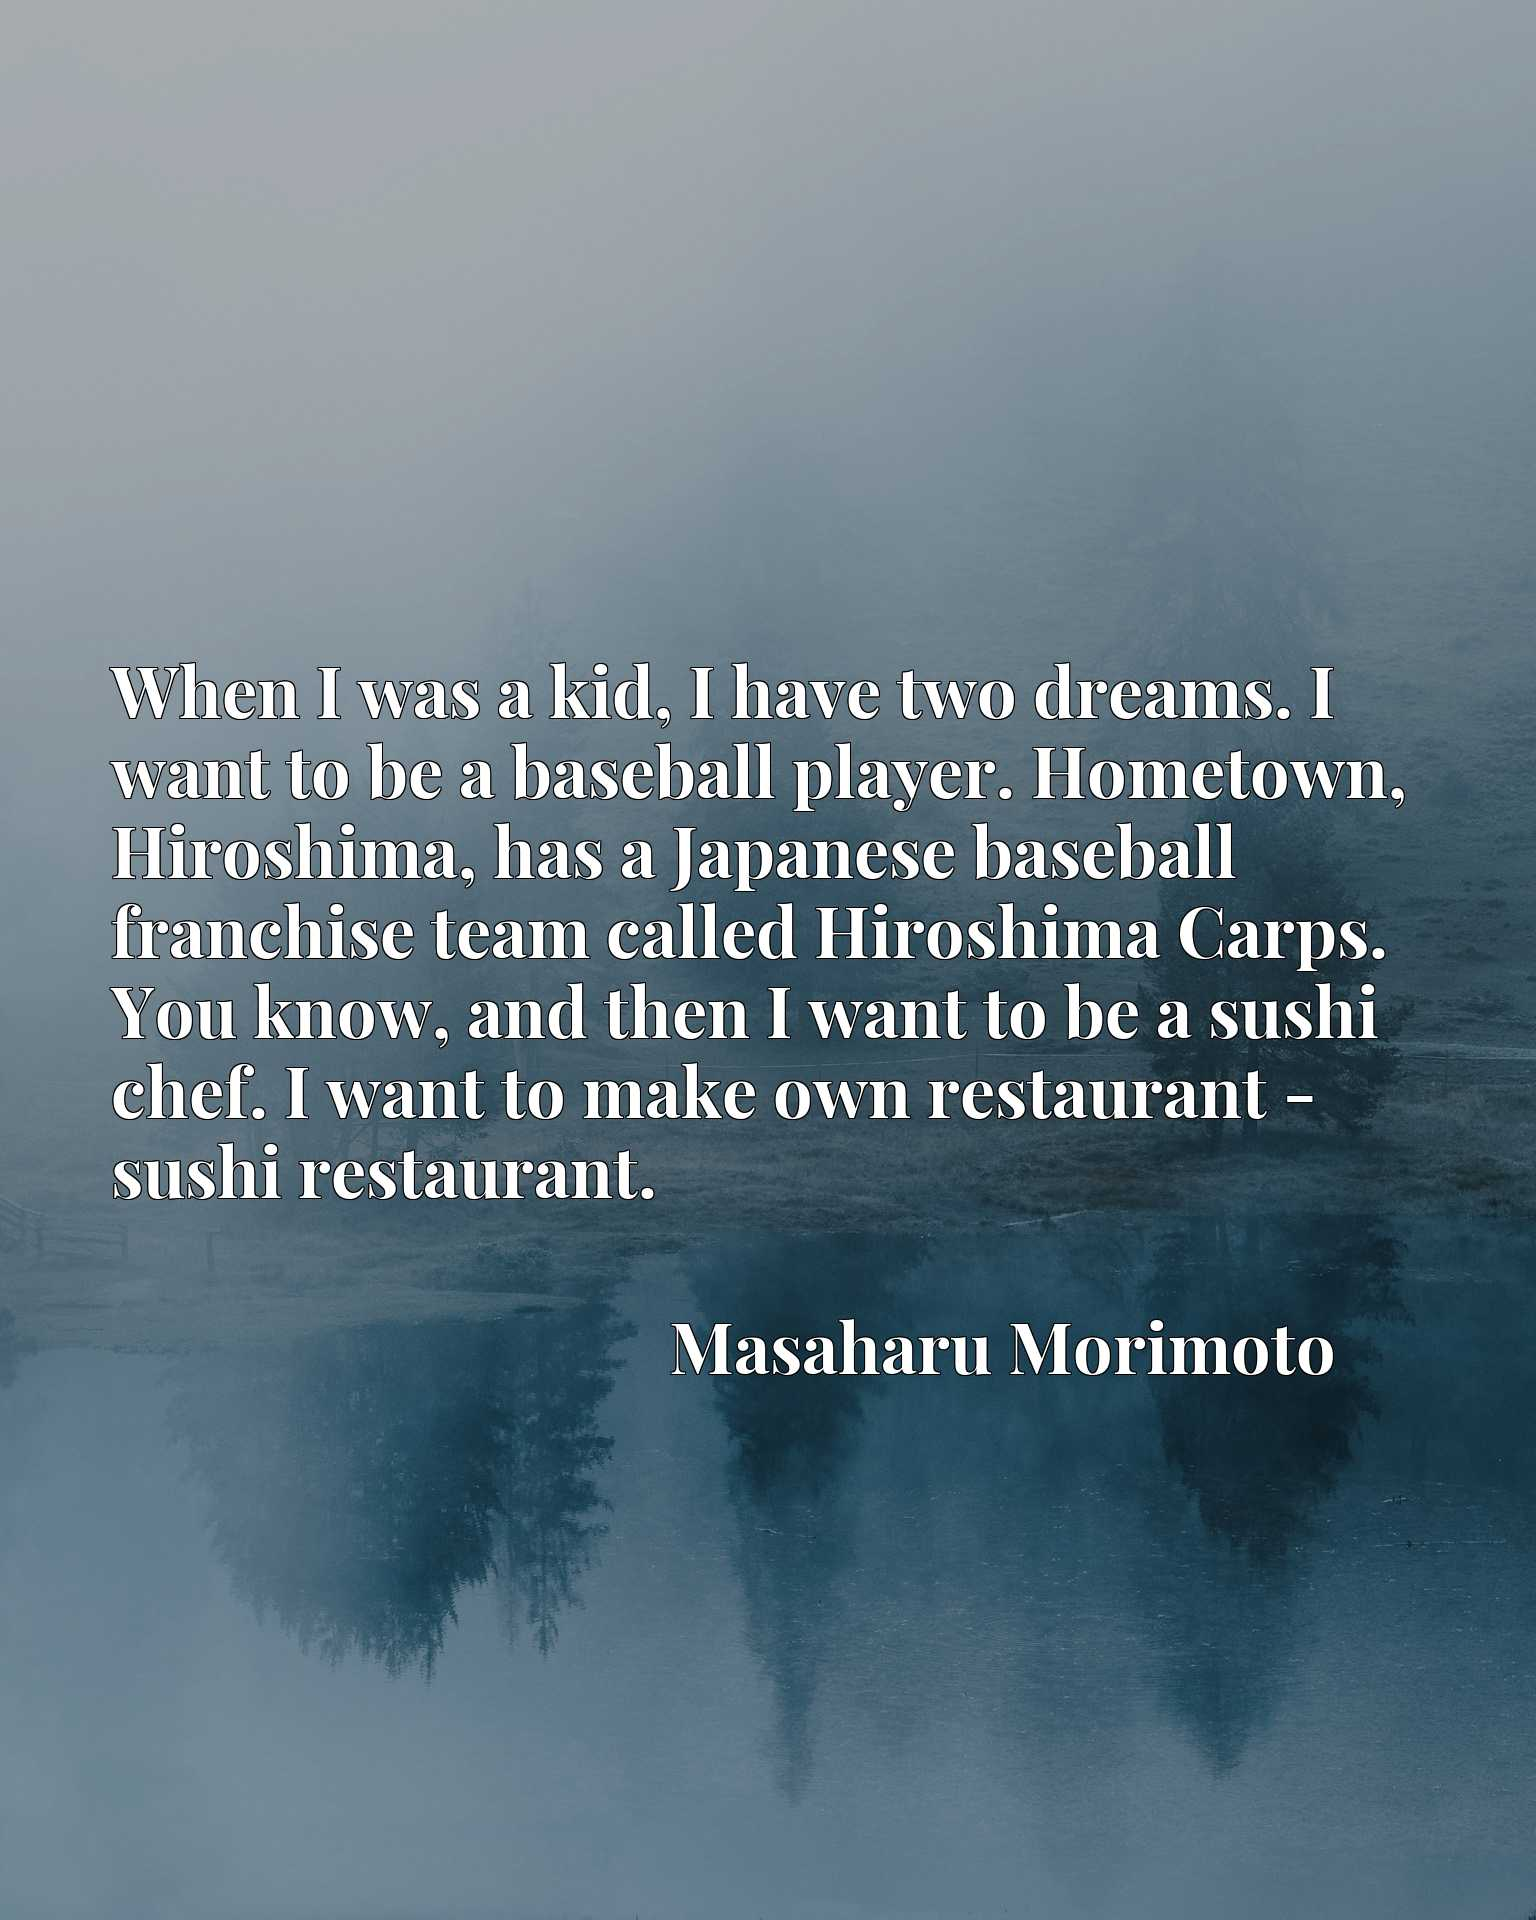 When I was a kid, I have two dreams. I want to be a baseball player. Hometown, Hiroshima, has a Japanese baseball franchise team called Hiroshima Carps. You know, and then I want to be a sushi chef. I want to make own restaurant - sushi restaurant.